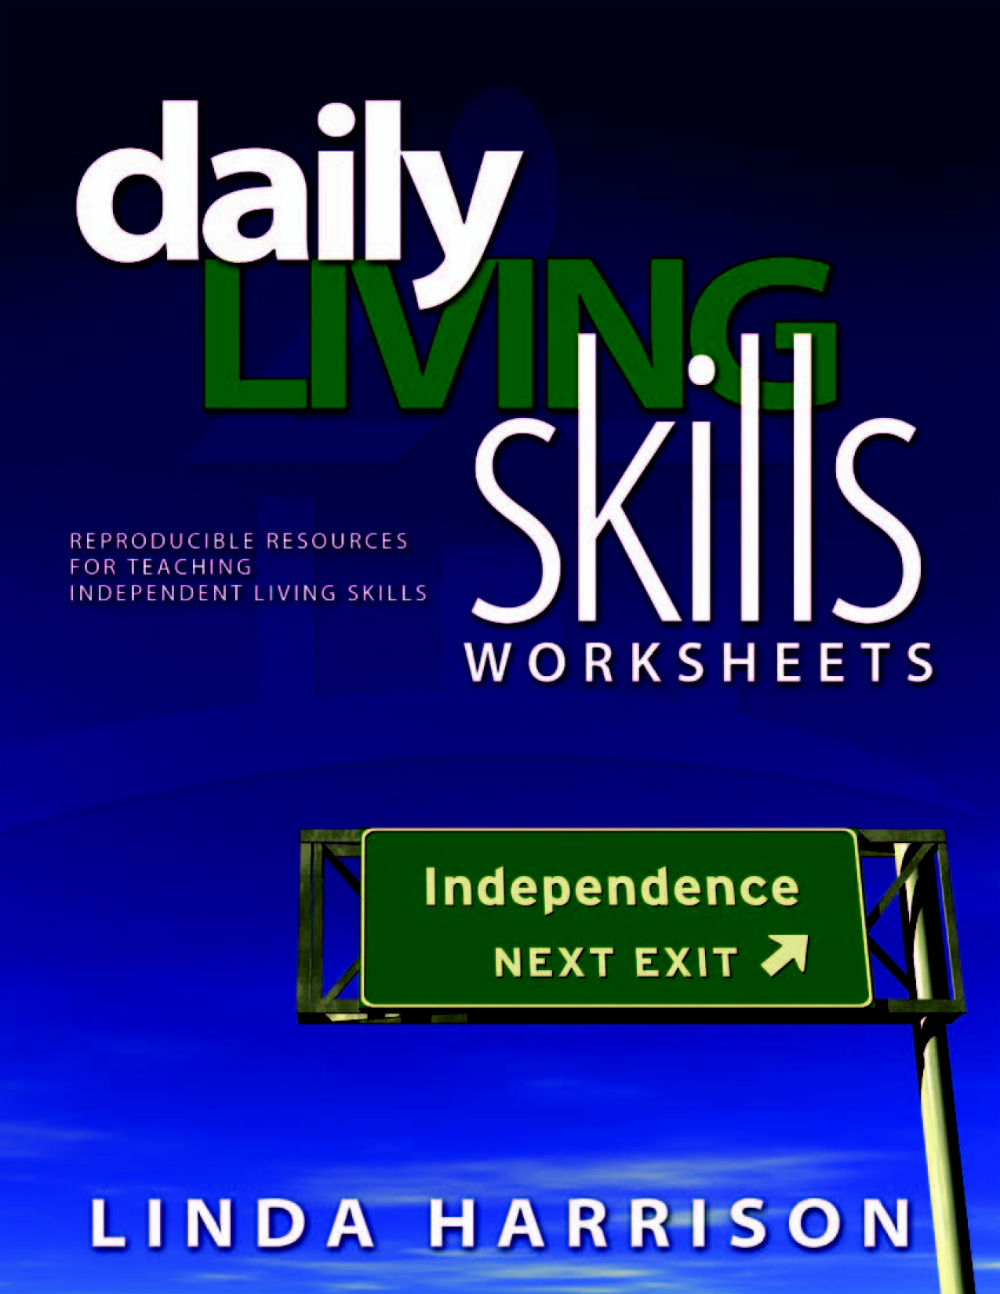 Printables Daily Living Skills Worksheets pediatric occupational therapy tips daily living skills worksheets worksheets